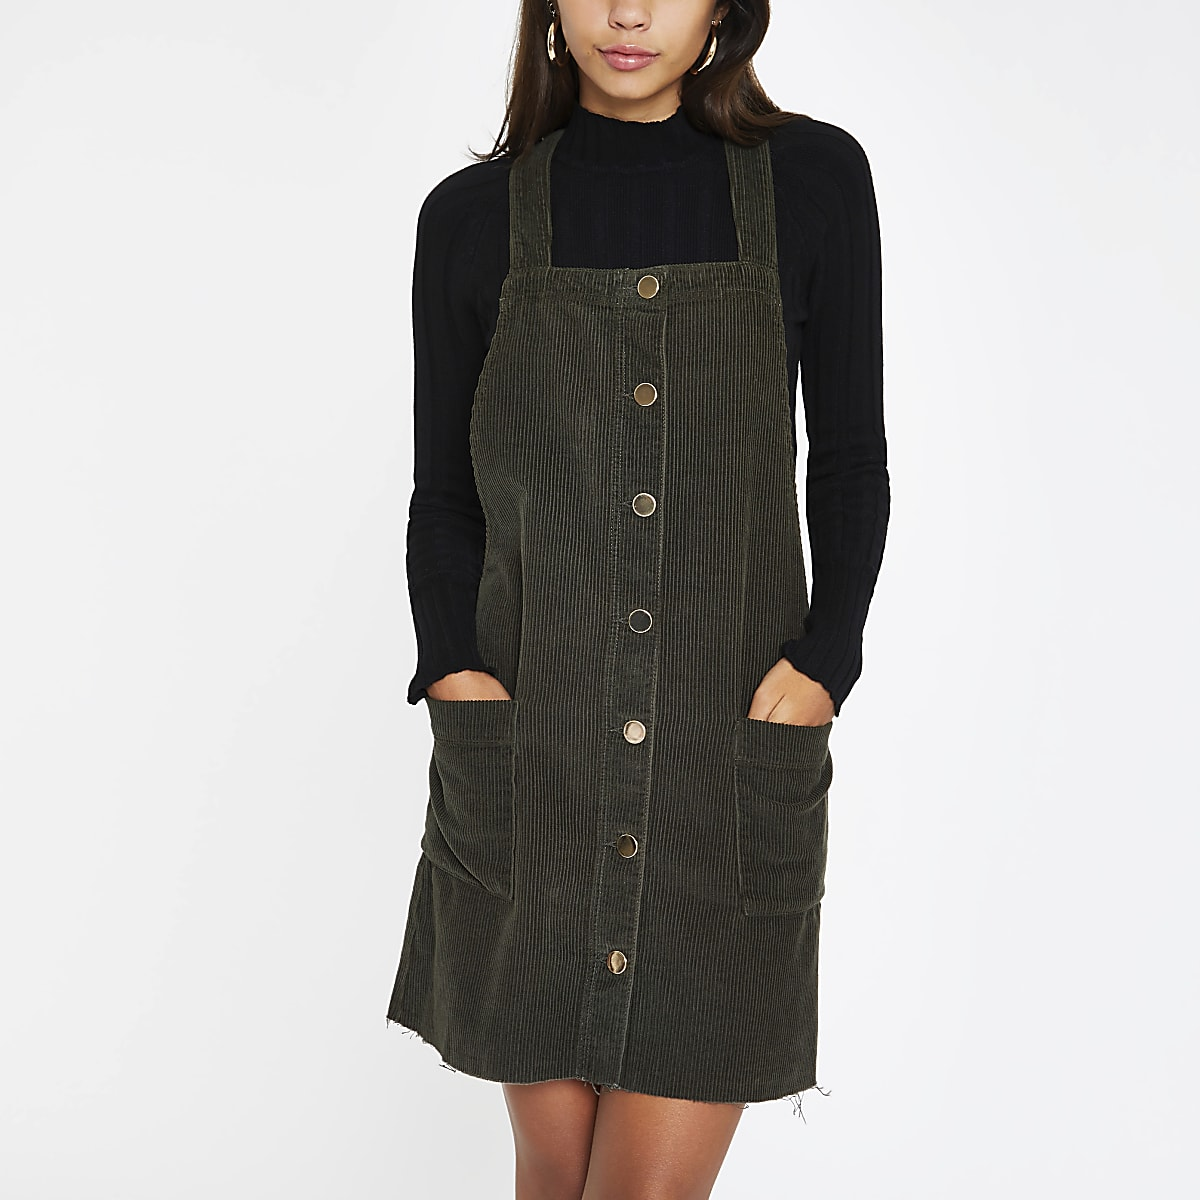 ce8e0f8e42 Khaki cord dungaree dress - Shift Dresses - Dresses - women